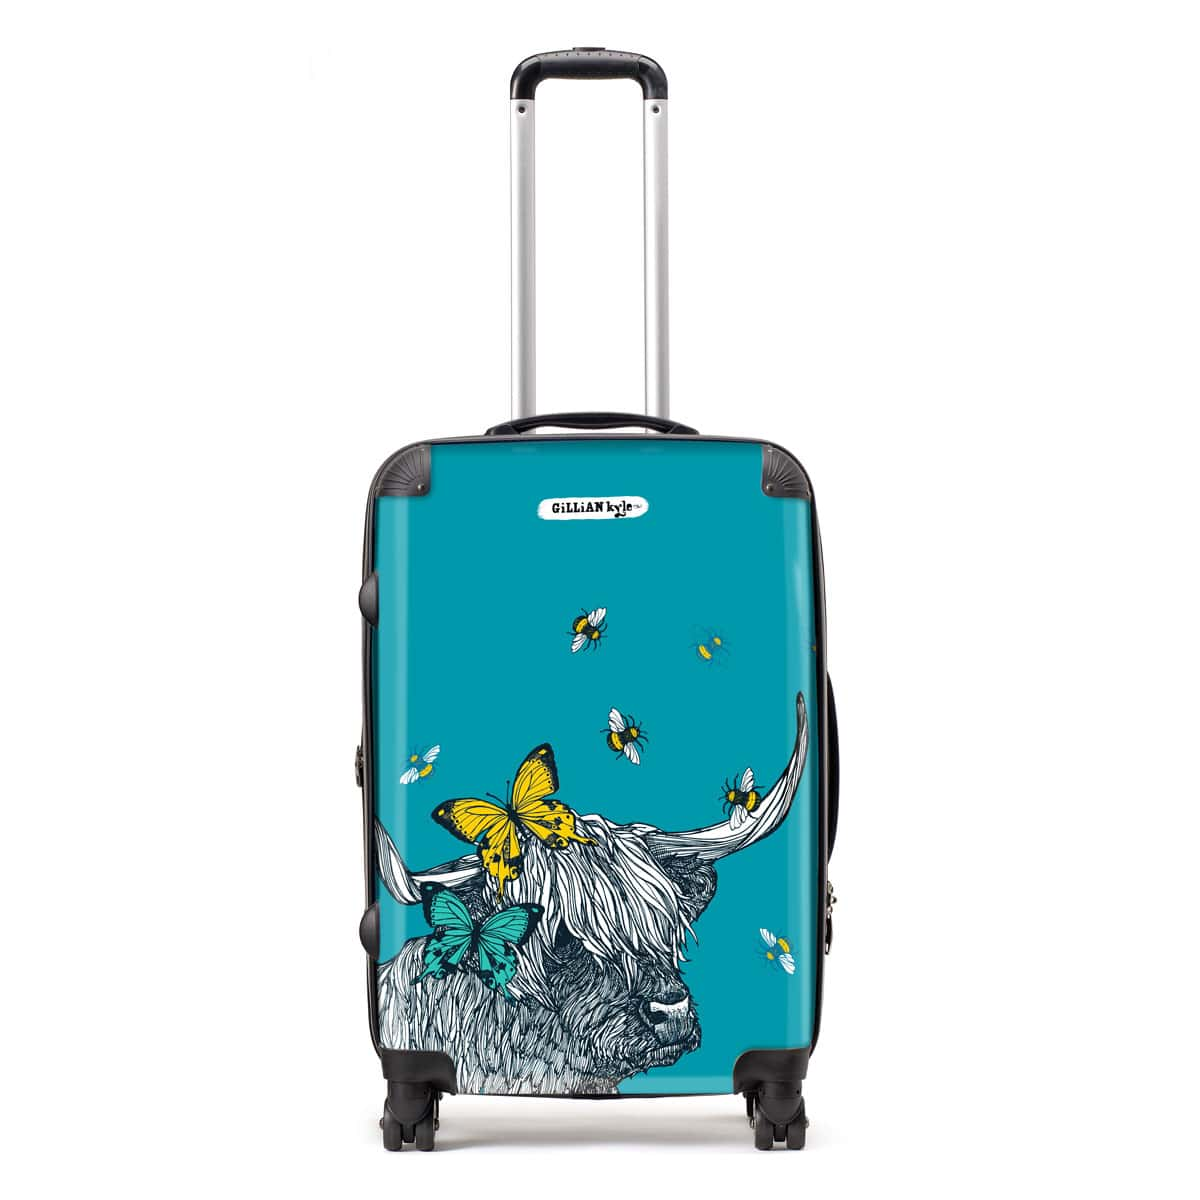 Scottish Highland cow suitcase with butterflies and bees by designer Gillian Kyle